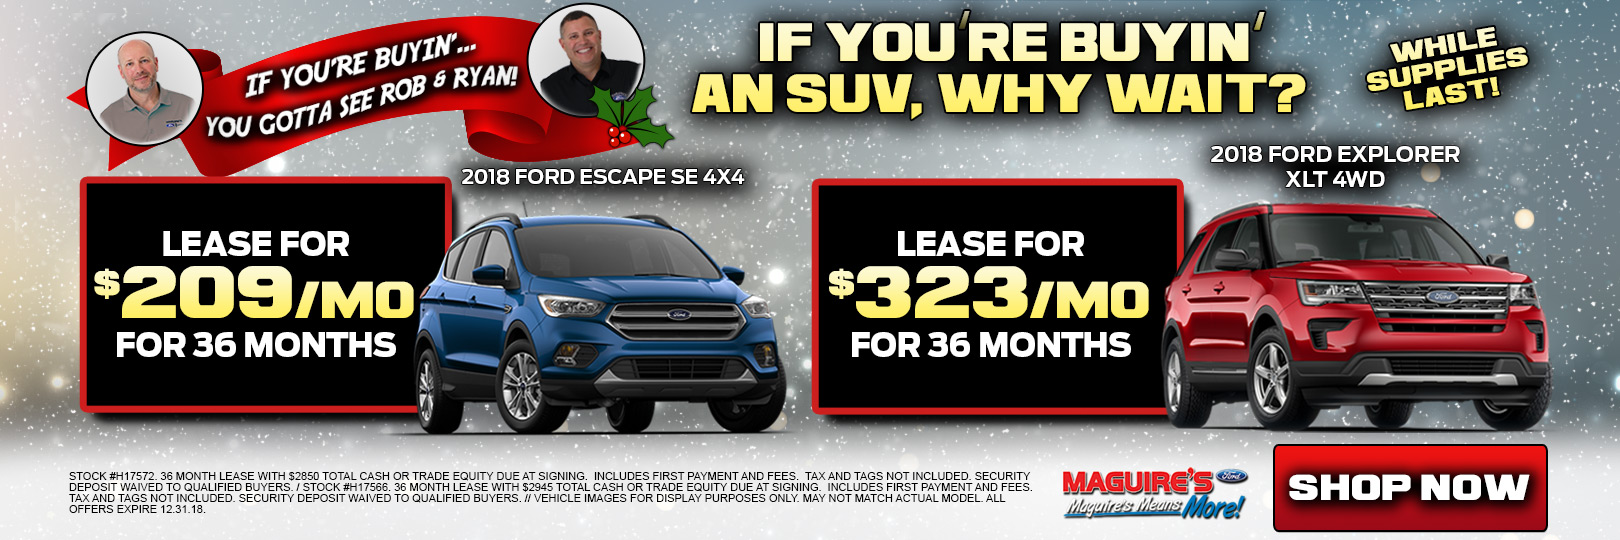 Buy an SUV in Hershey PA